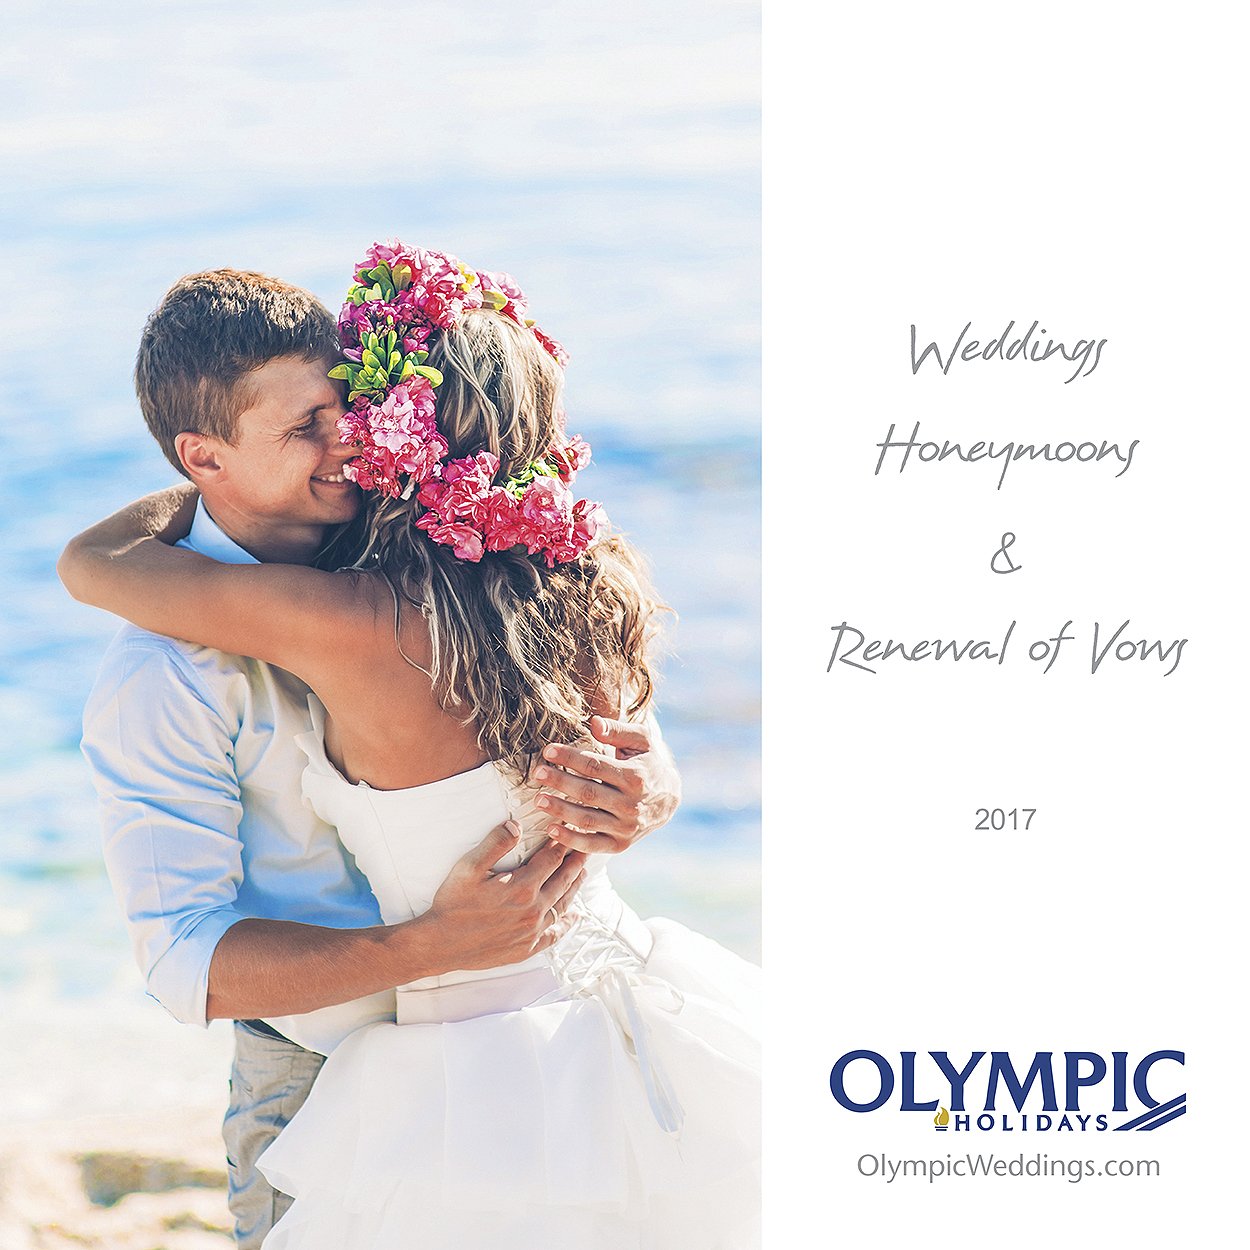 olympic holidays weddings honeymoons brochure 2017